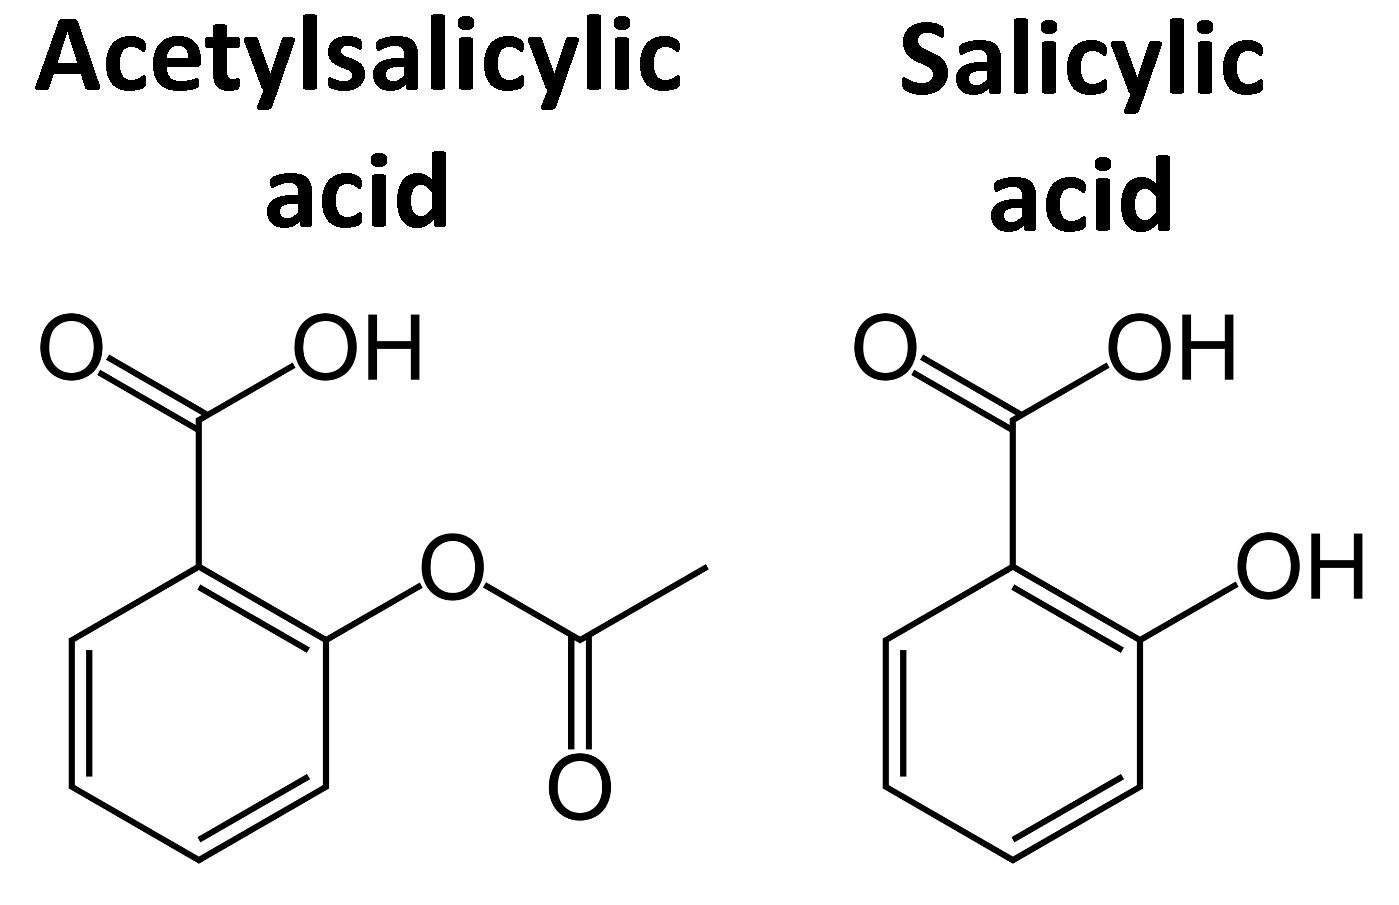 The Logic Of Science Page 9 Process Flow Diagram Salicylic Acid Chemical Structure Acetylsalicylic